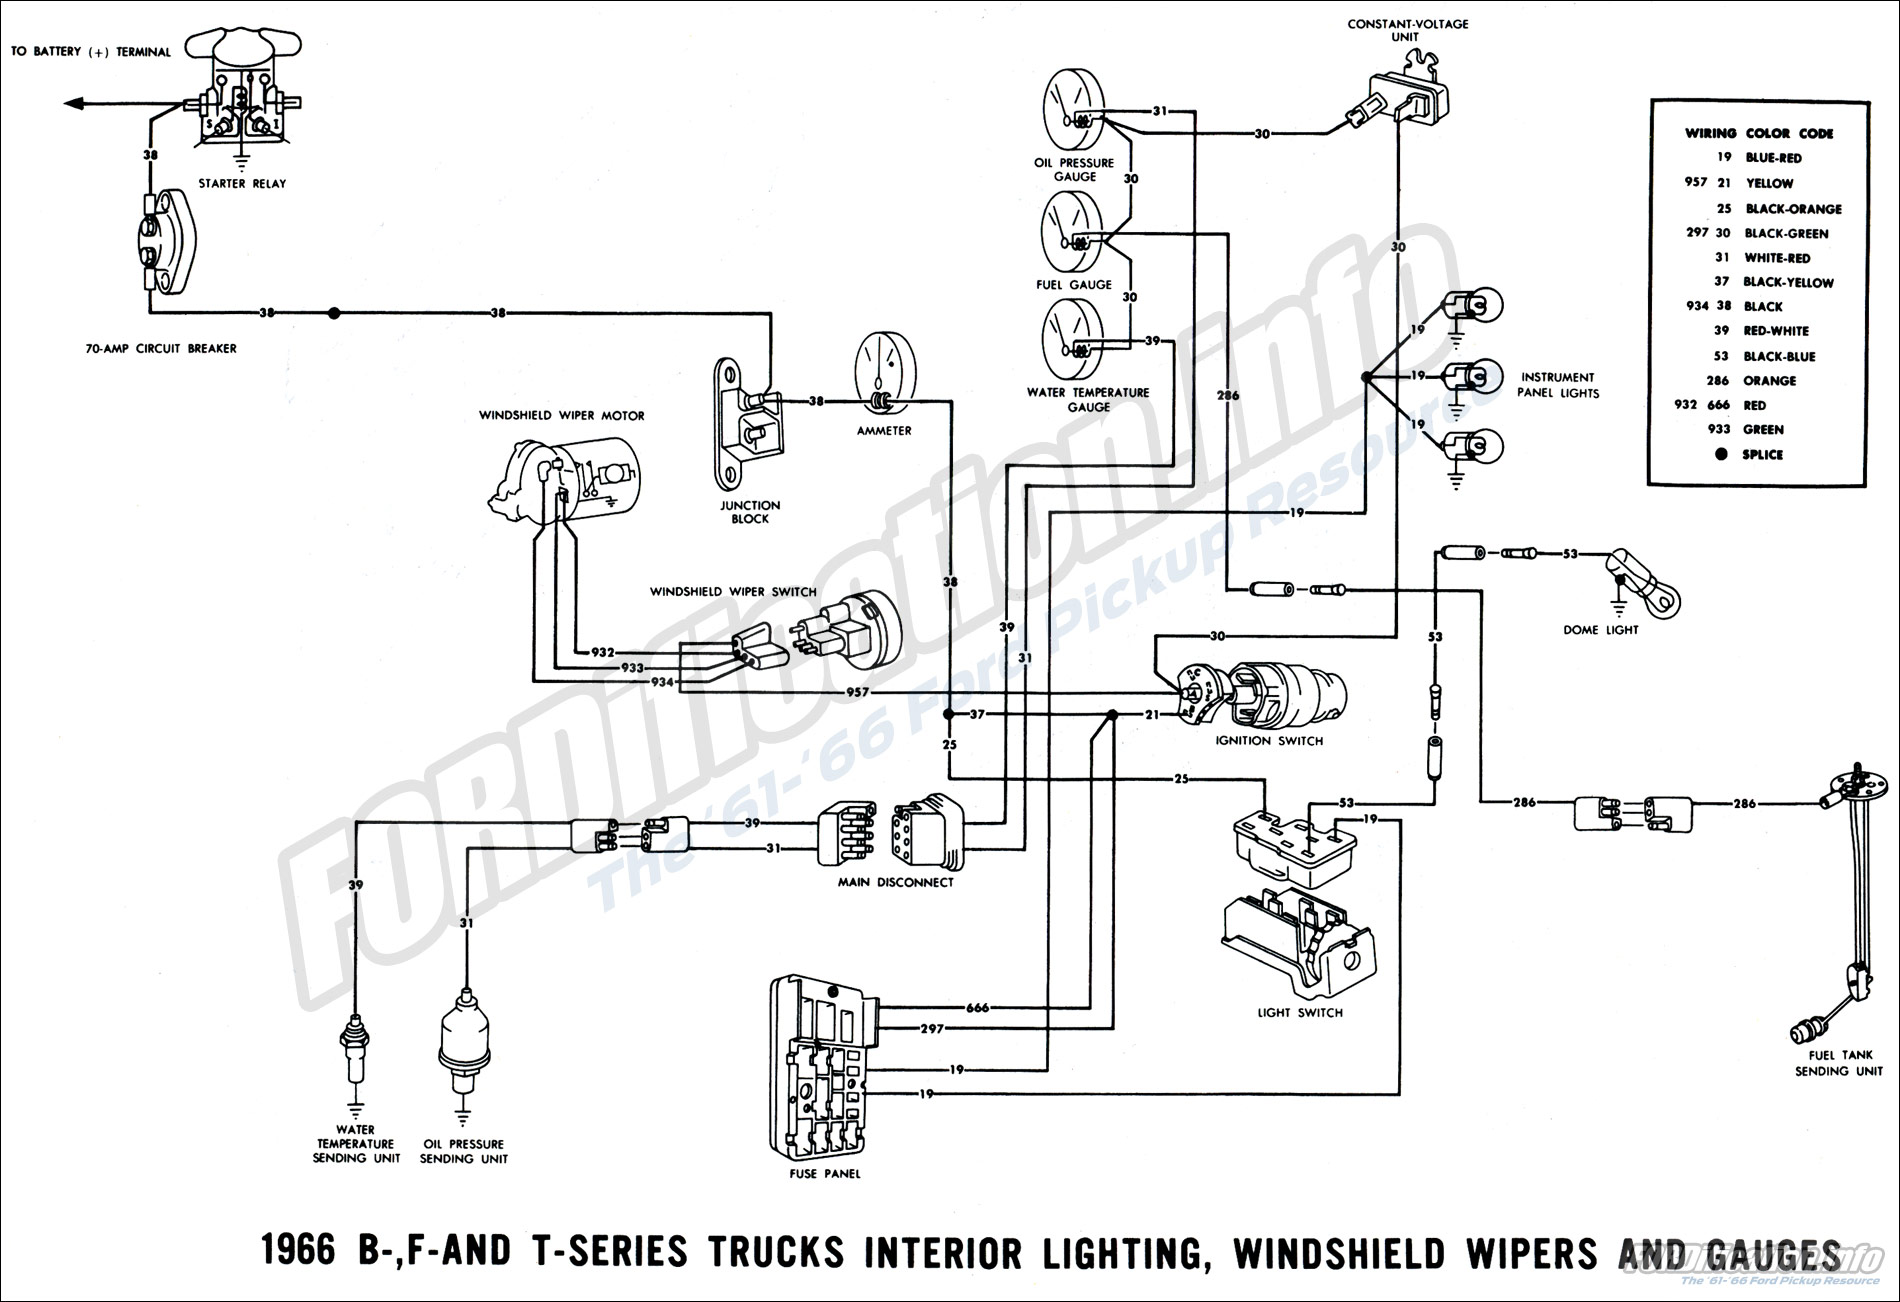 Vw Beetle Wiring Diagrams Electric in addition Bgm Bignition Bswitch as well Hqdefault in addition Fordf Owd Toc in addition Hqdefault. on 1962 ford truck wiring diagram